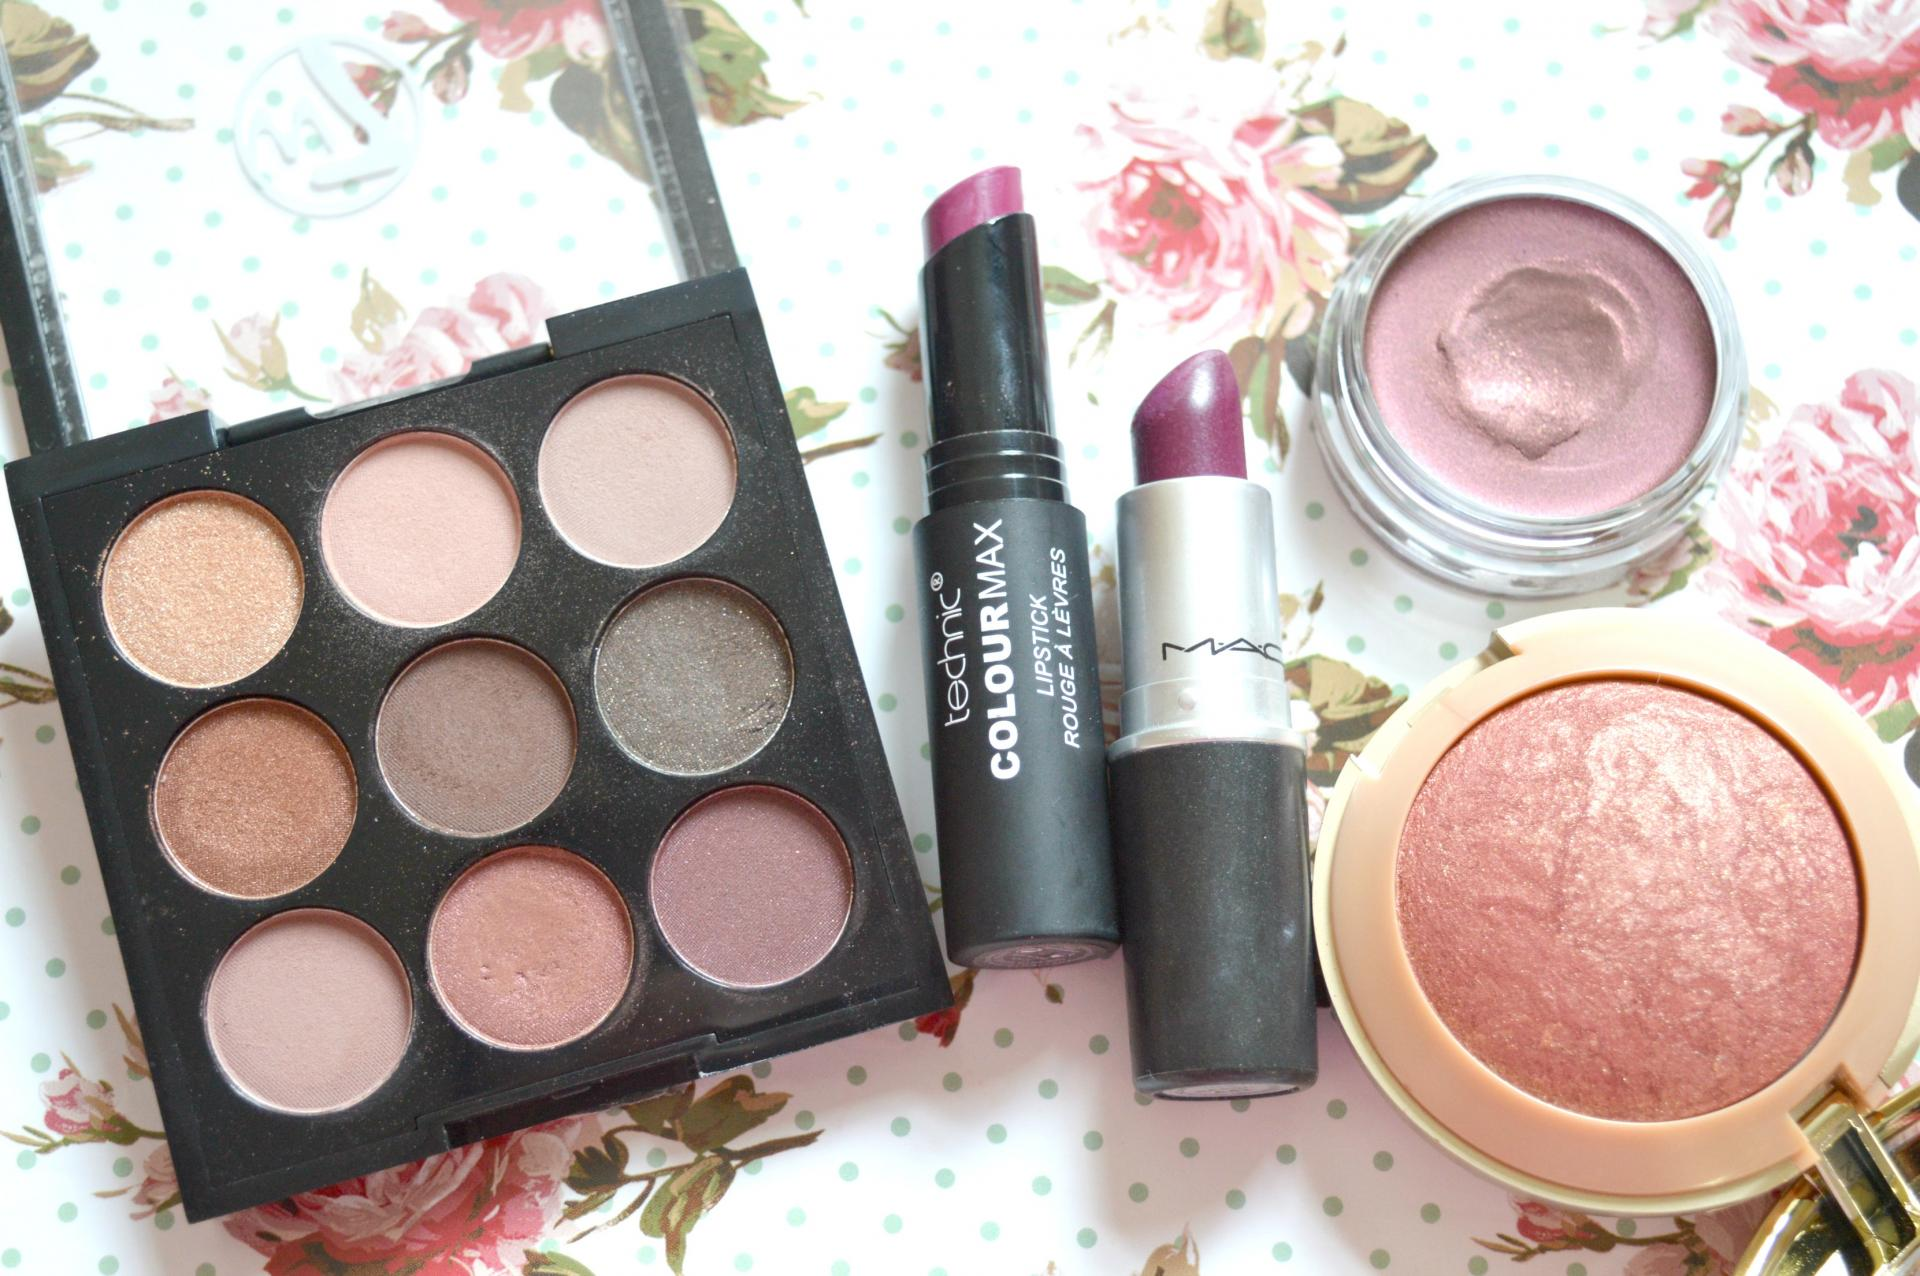 5 Really Awesome Makeup Products For Autumn | W7 The Naughty Nine Mid Summer Nights palette, Technic Colour Max Lipstick in Deep Purple, MAC Lipstick in Rebel, Bourjois 24H Color Edition Cream To Powder Eyeshadow in Prune Nocturne and Milani Baked Blush in Red Vino